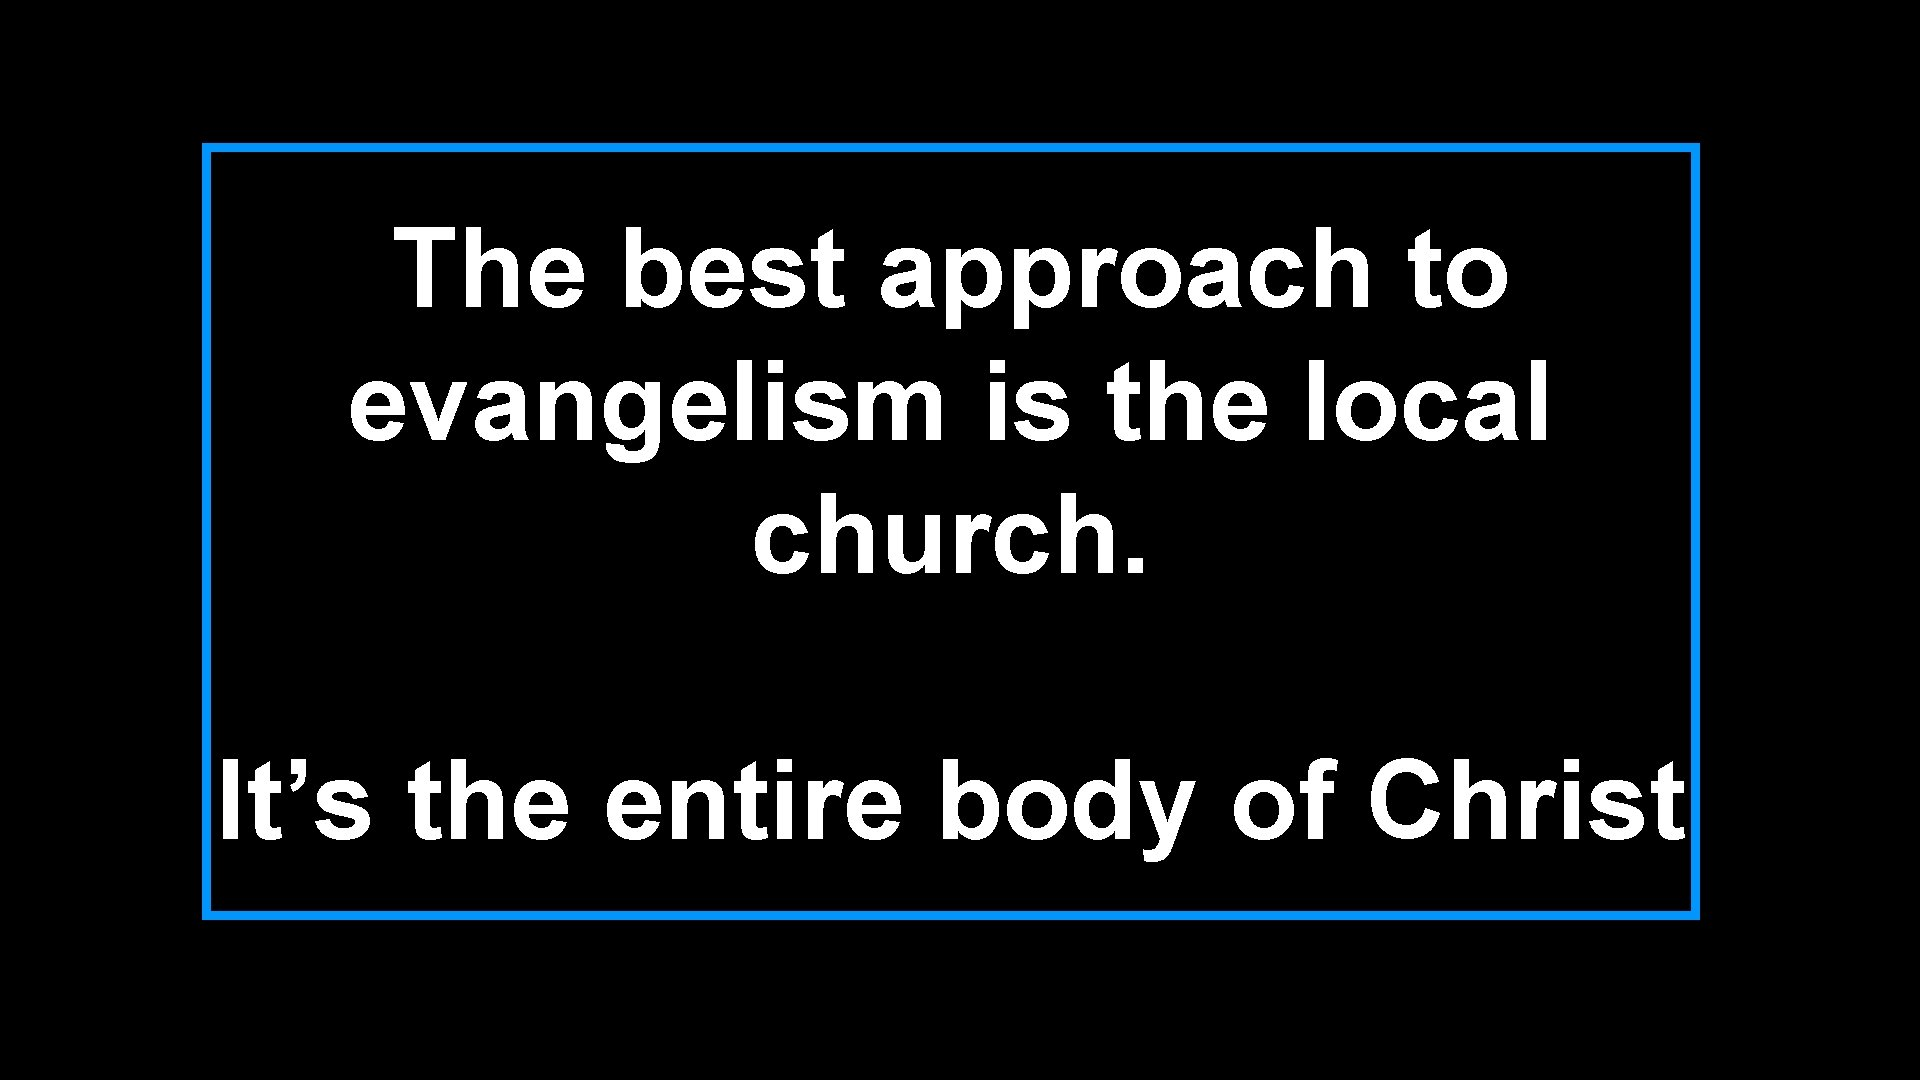 The best approach to evangelism is the local church. It's the entire body of